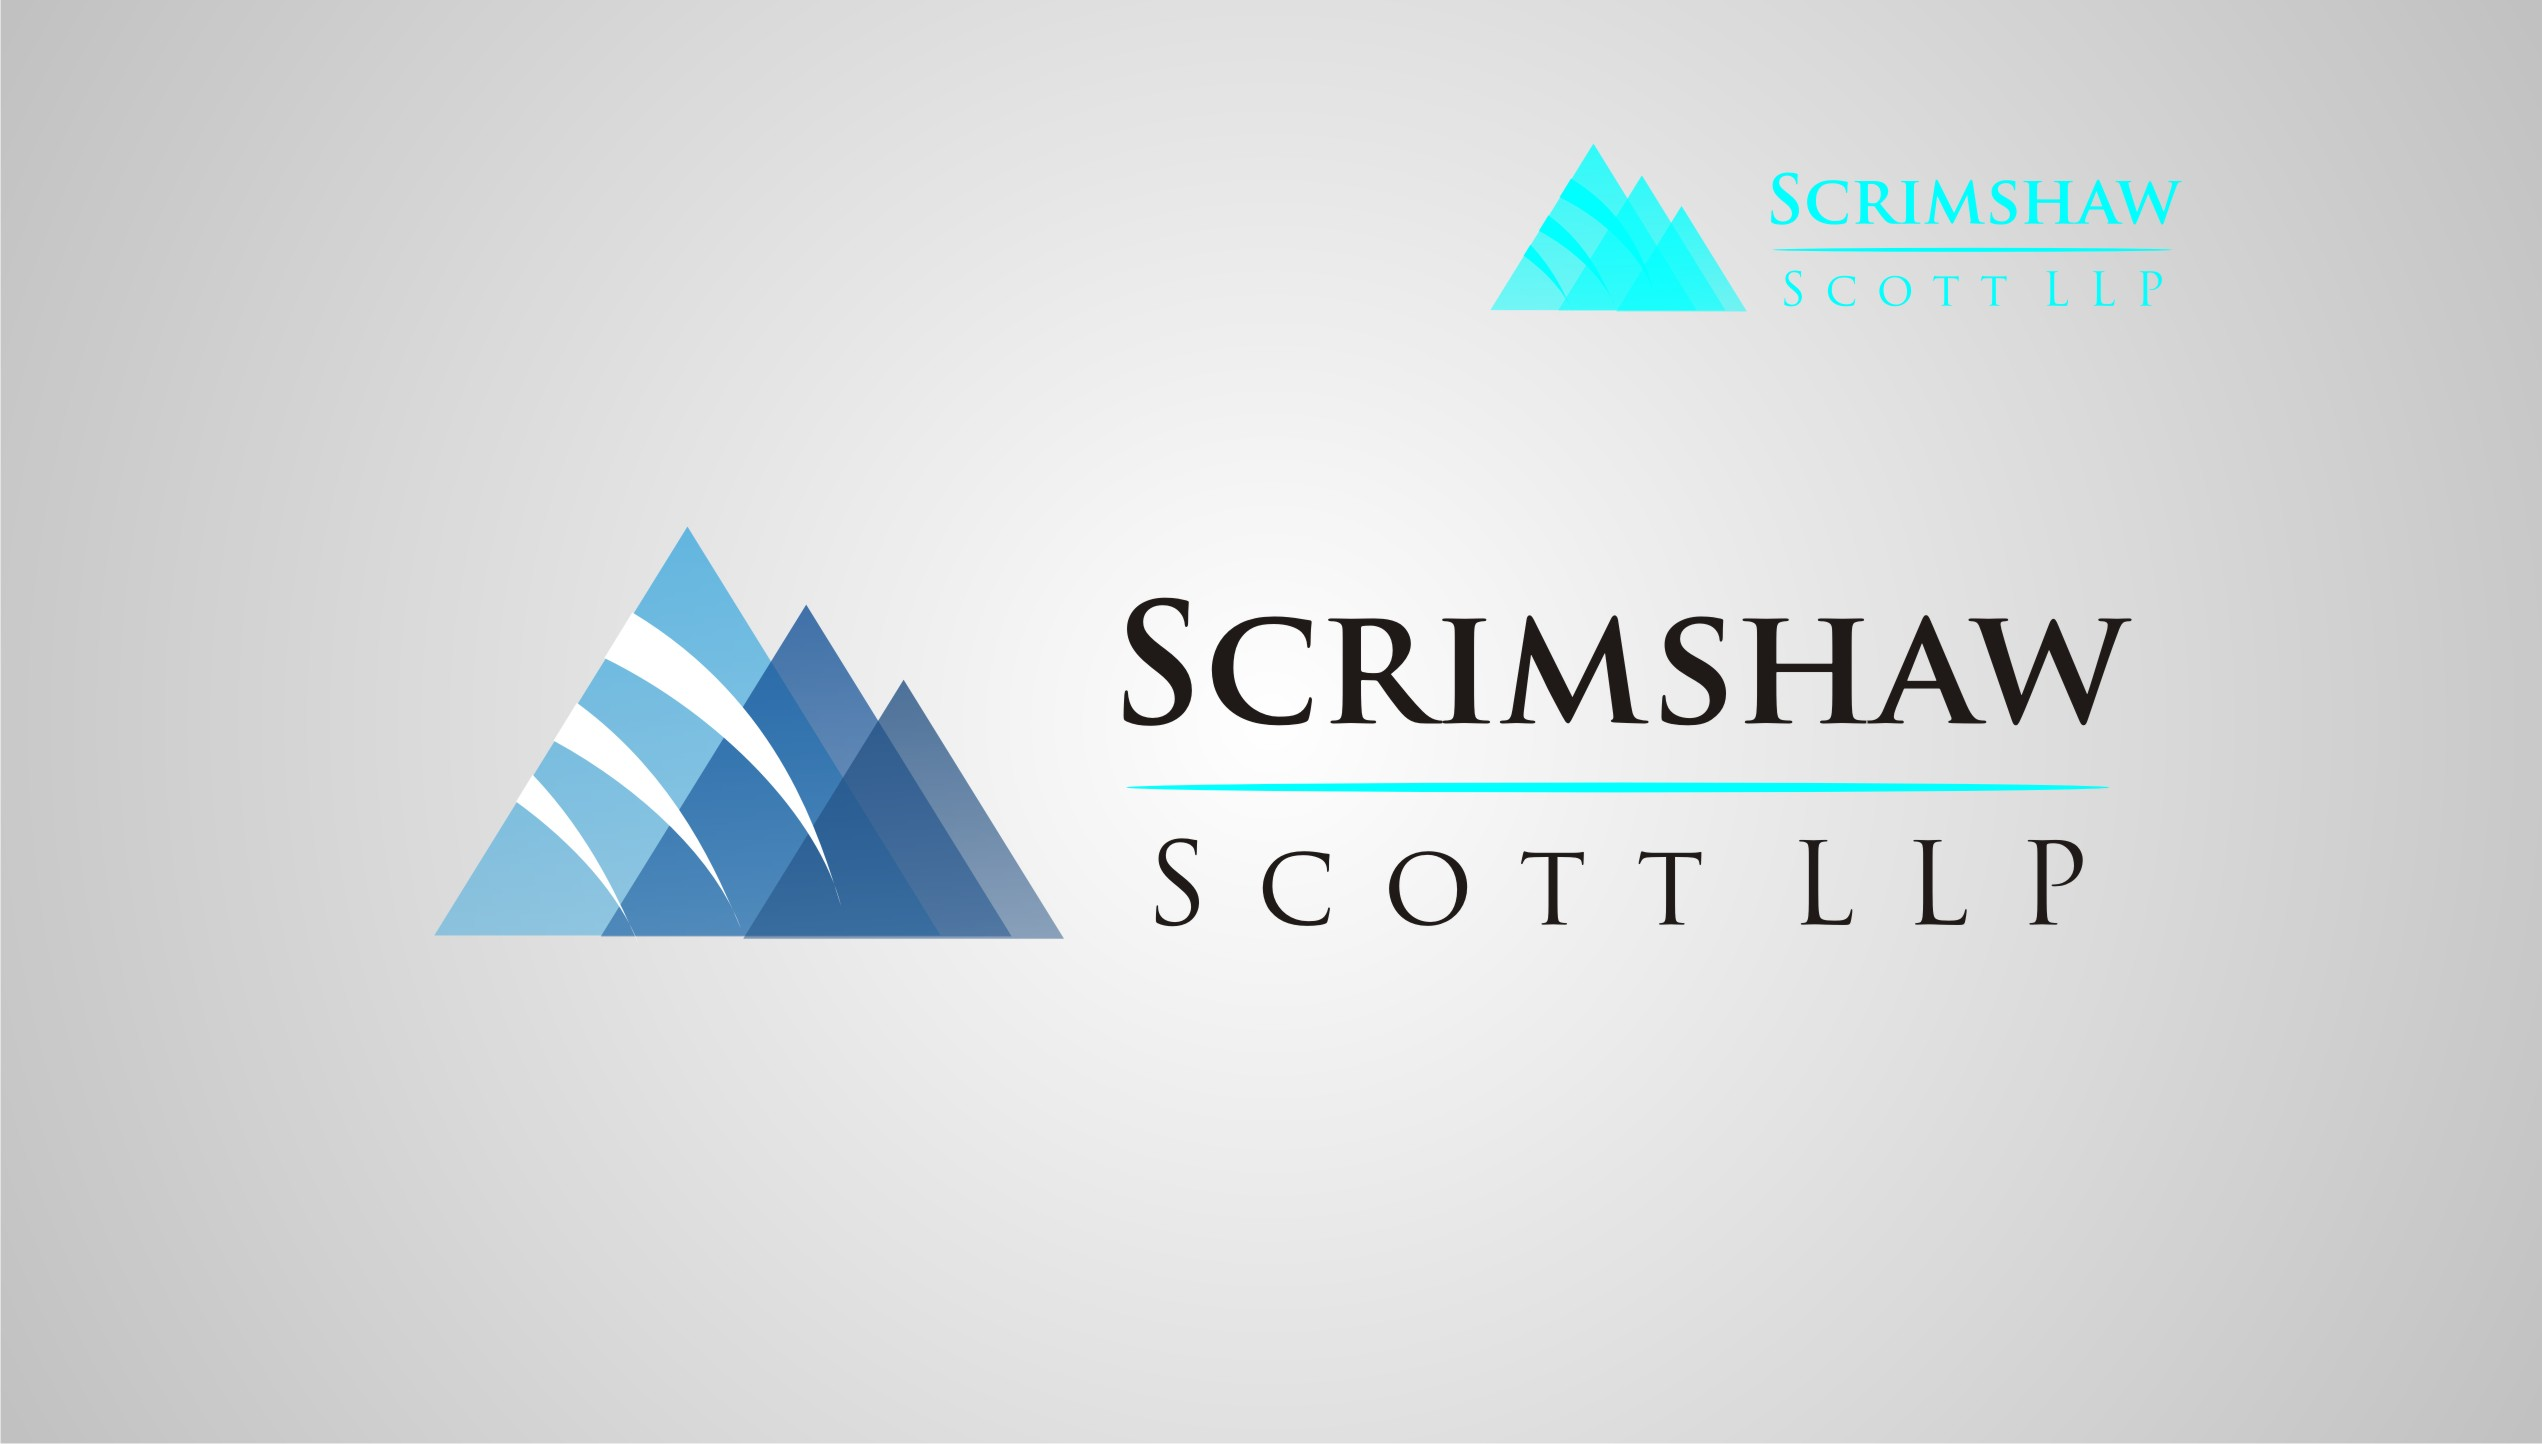 Logo Design by Gaber Barabaraberebere - Entry No. 52 in the Logo Design Contest Creative Logo Design for Scrimshaw Scott LLP.